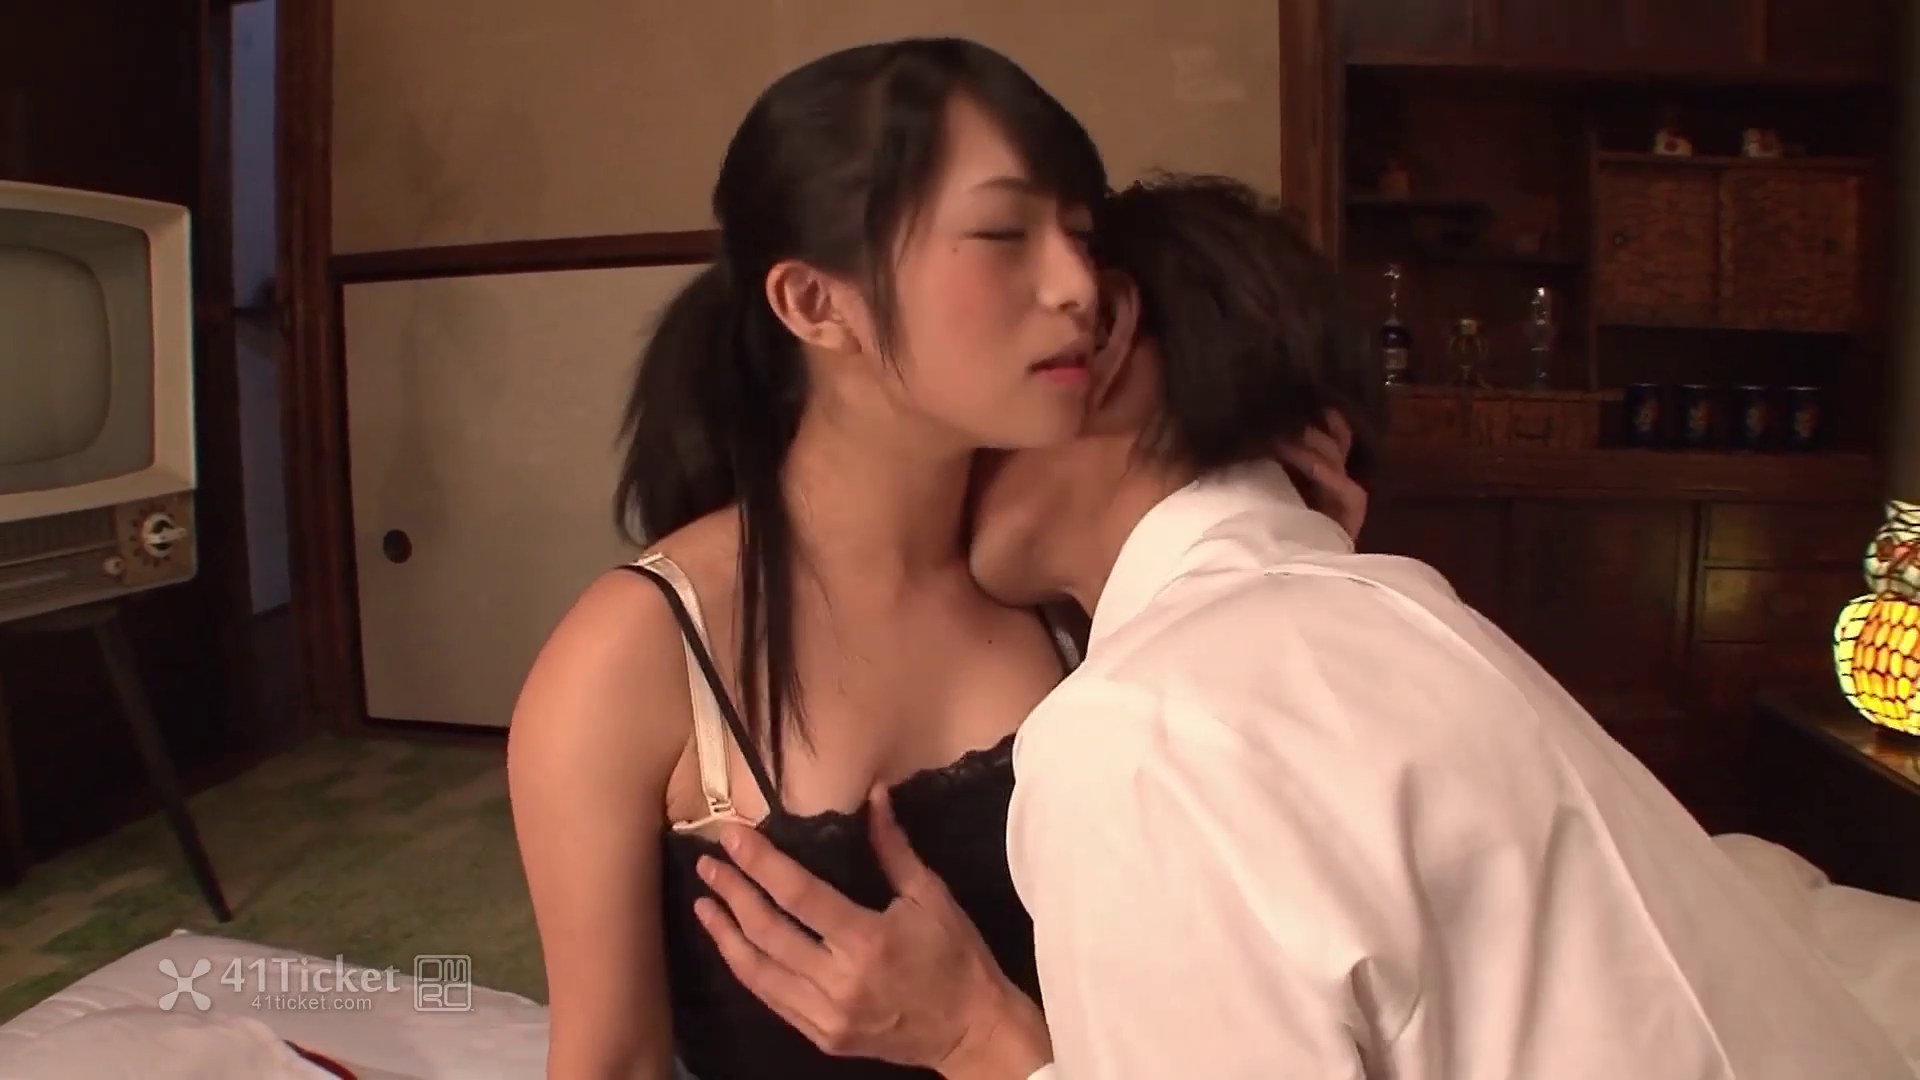 my best friends girlfriend, yume kato -uncensored jav- on gotporn